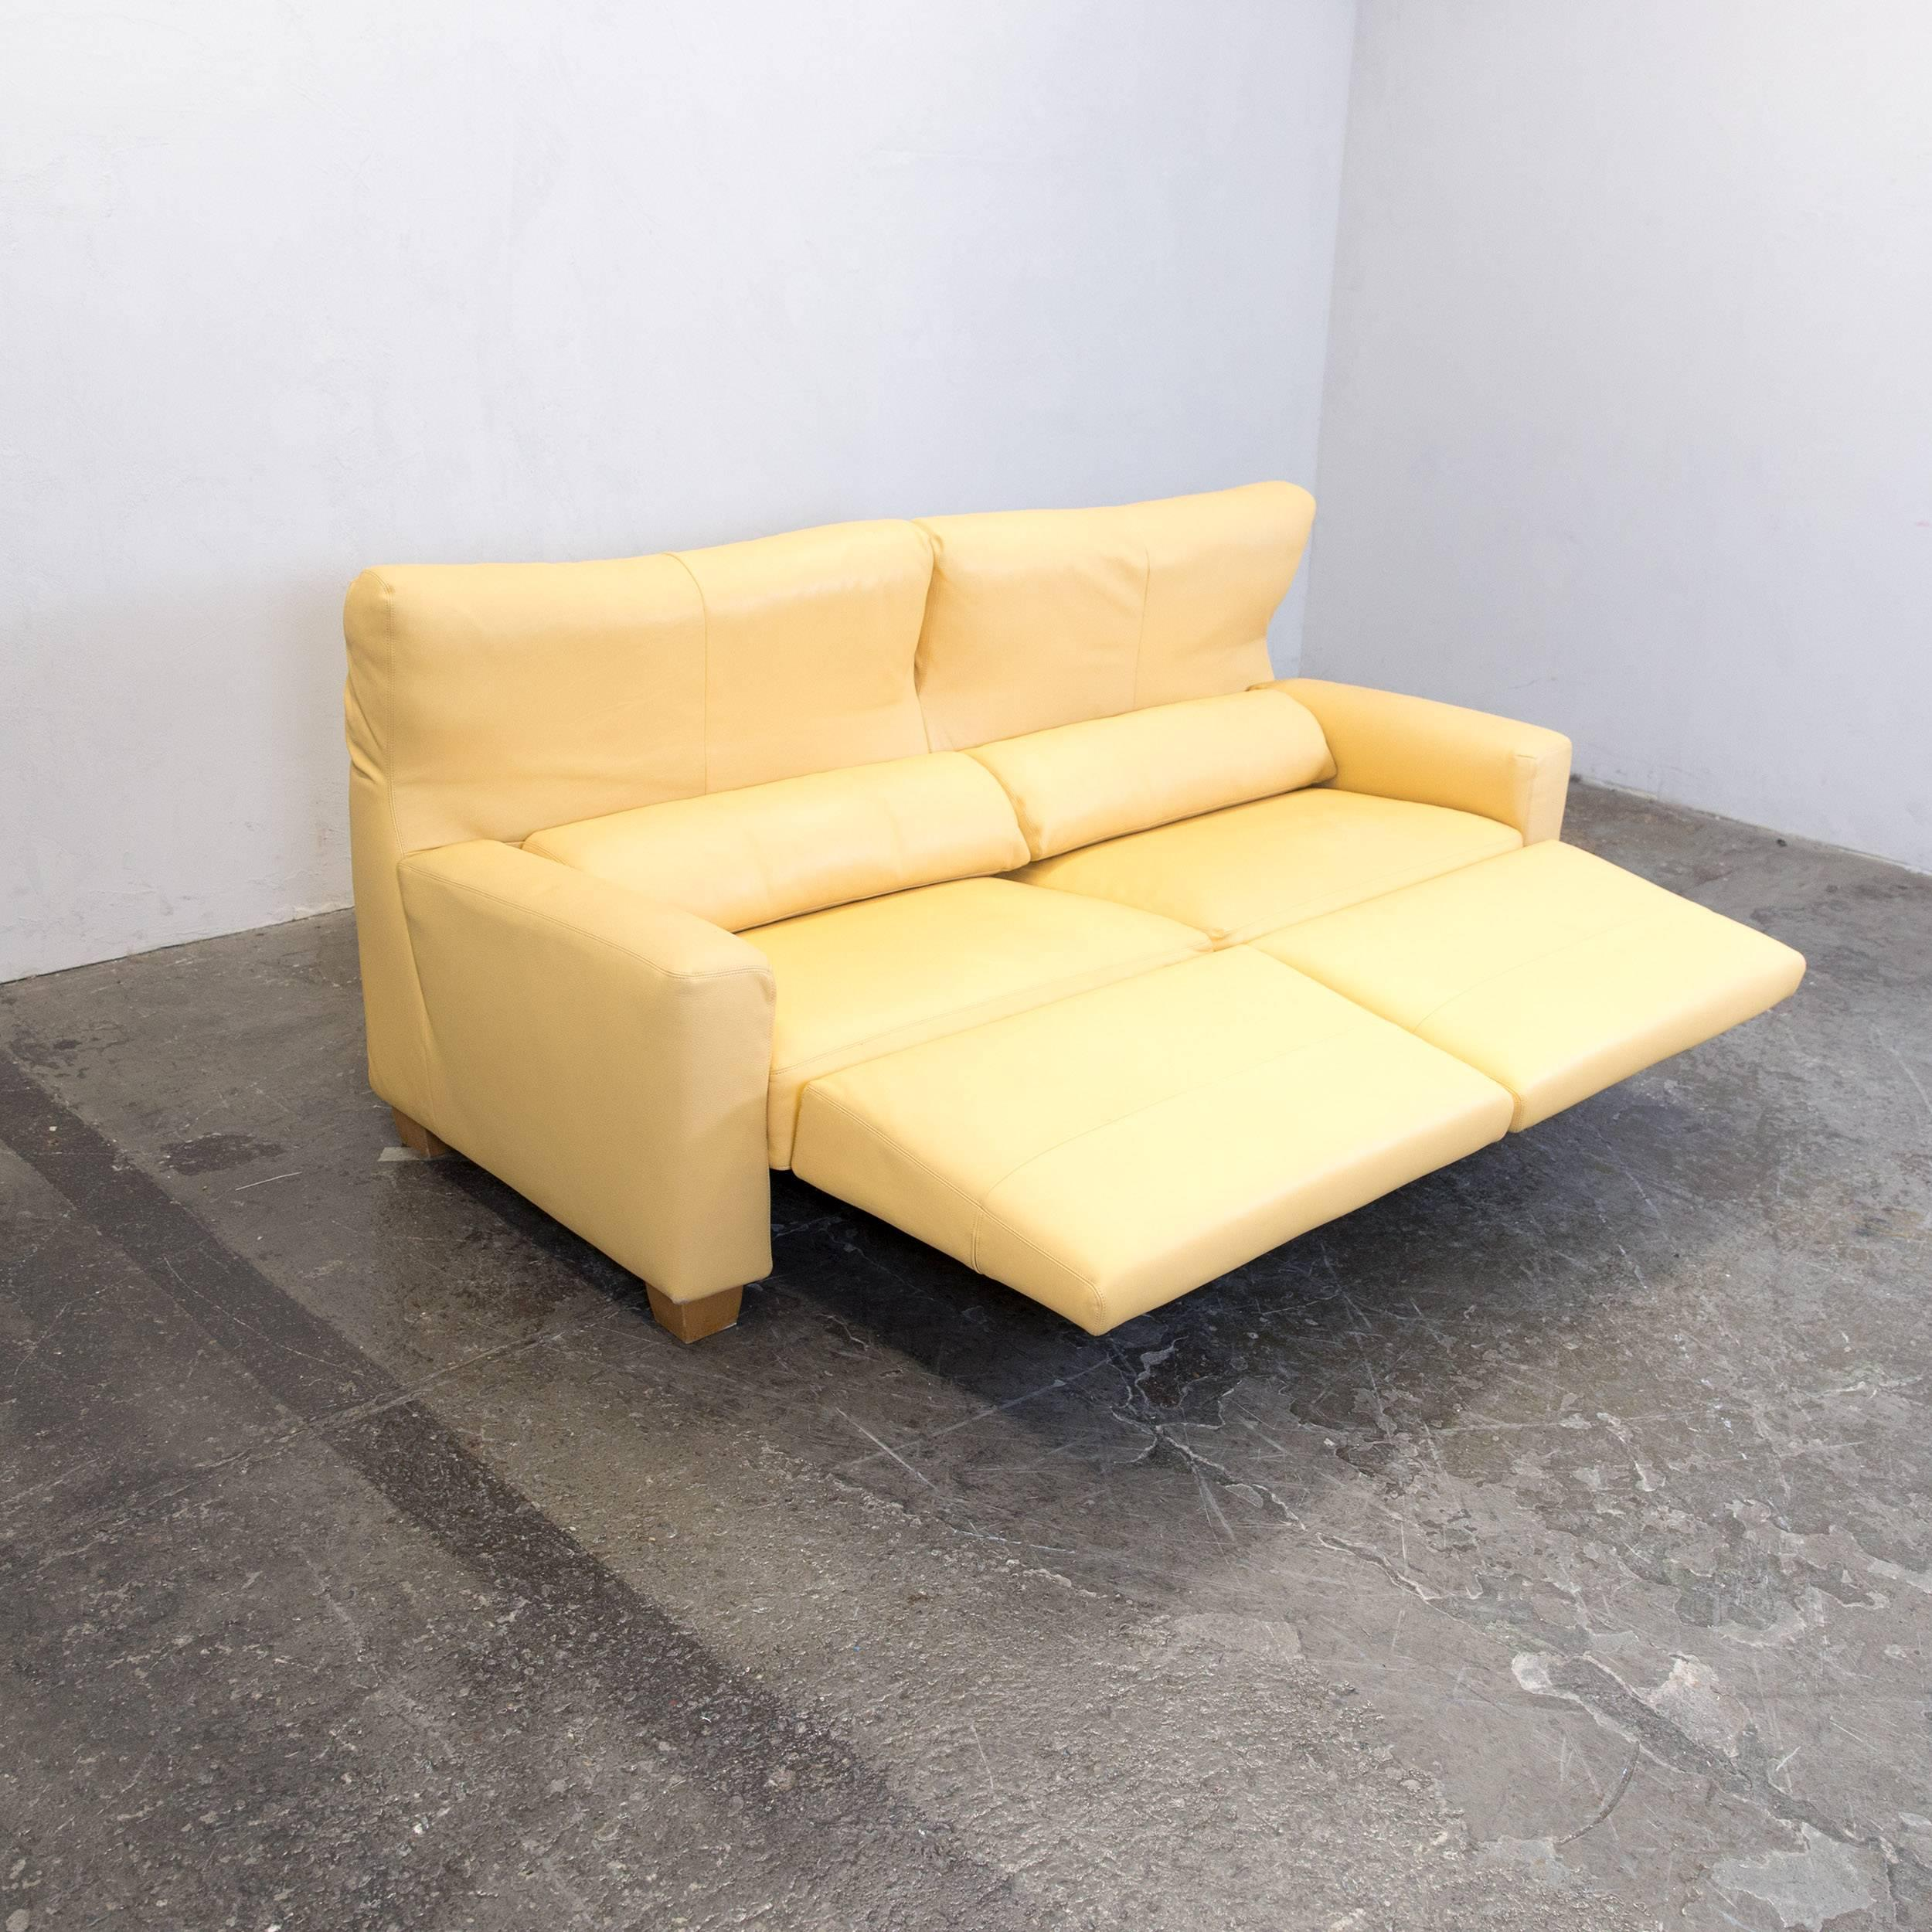 FSM Leather Couch Relax Function Three Seat Sofa Yellow Orange For .